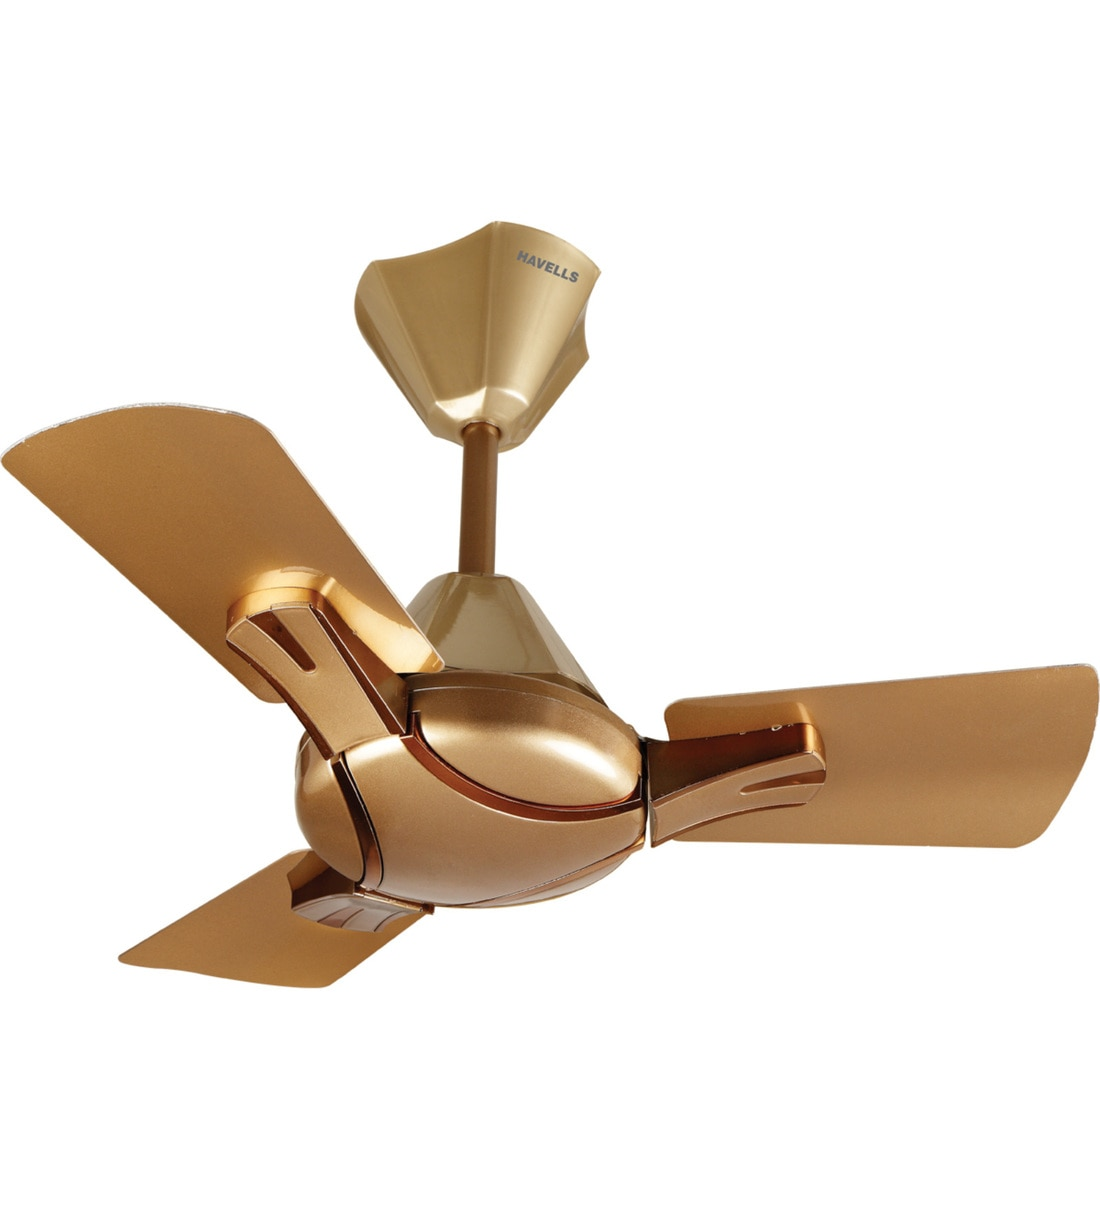 Buy Nicola 600 Mm Bronze Copper Ceiling Fan By Havells Online Homeware Homeware Discontinued Pepperfry Product